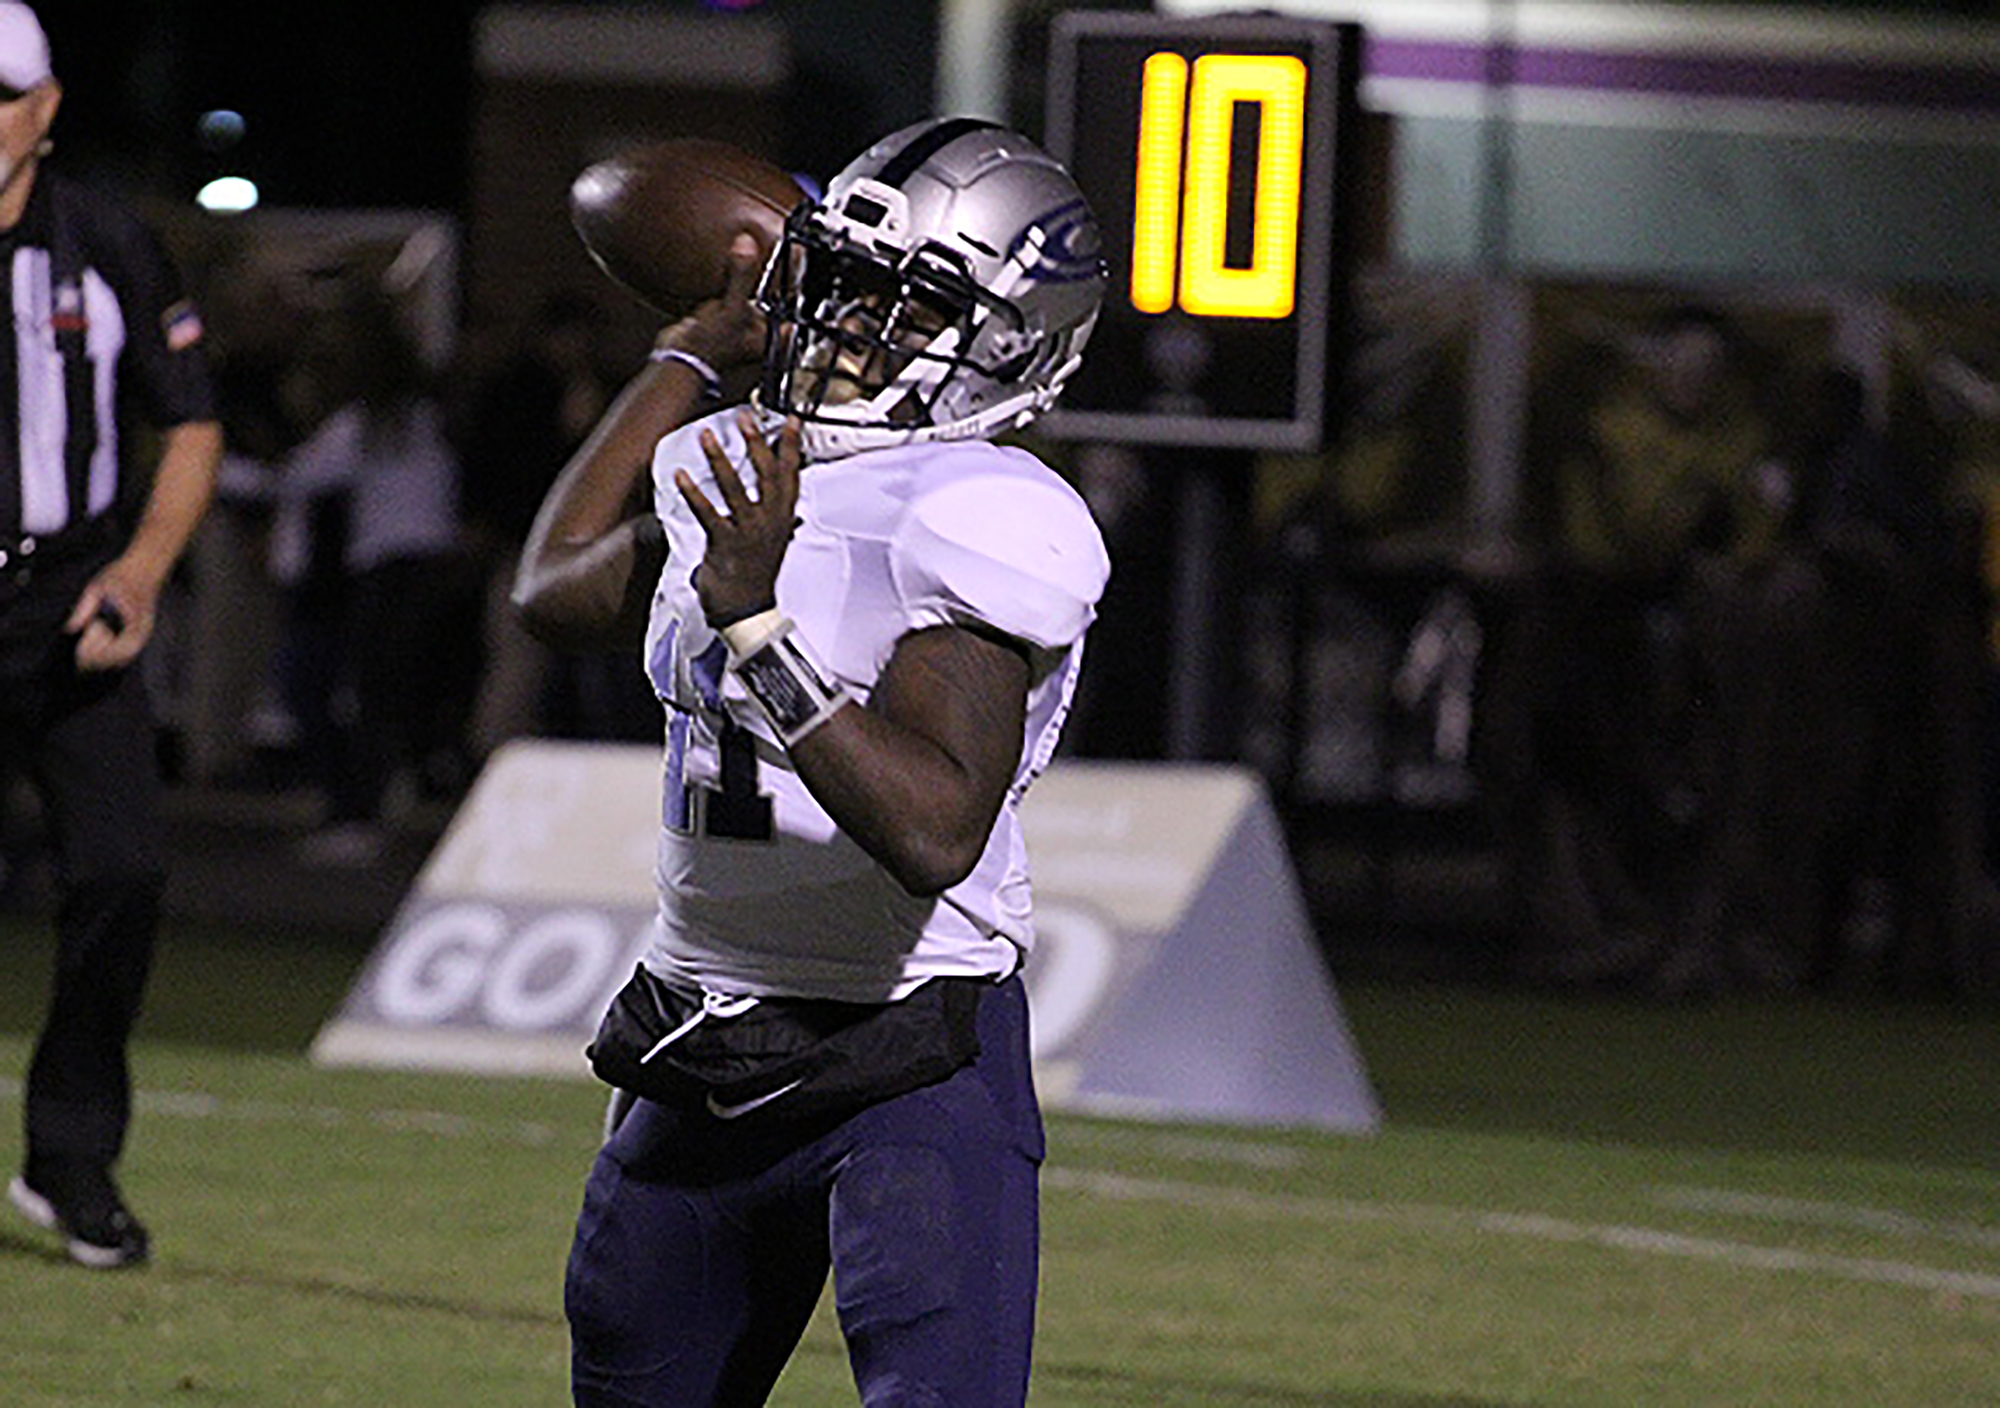 Clay-Chalkville survives scare against Gadsden City to close out regular season